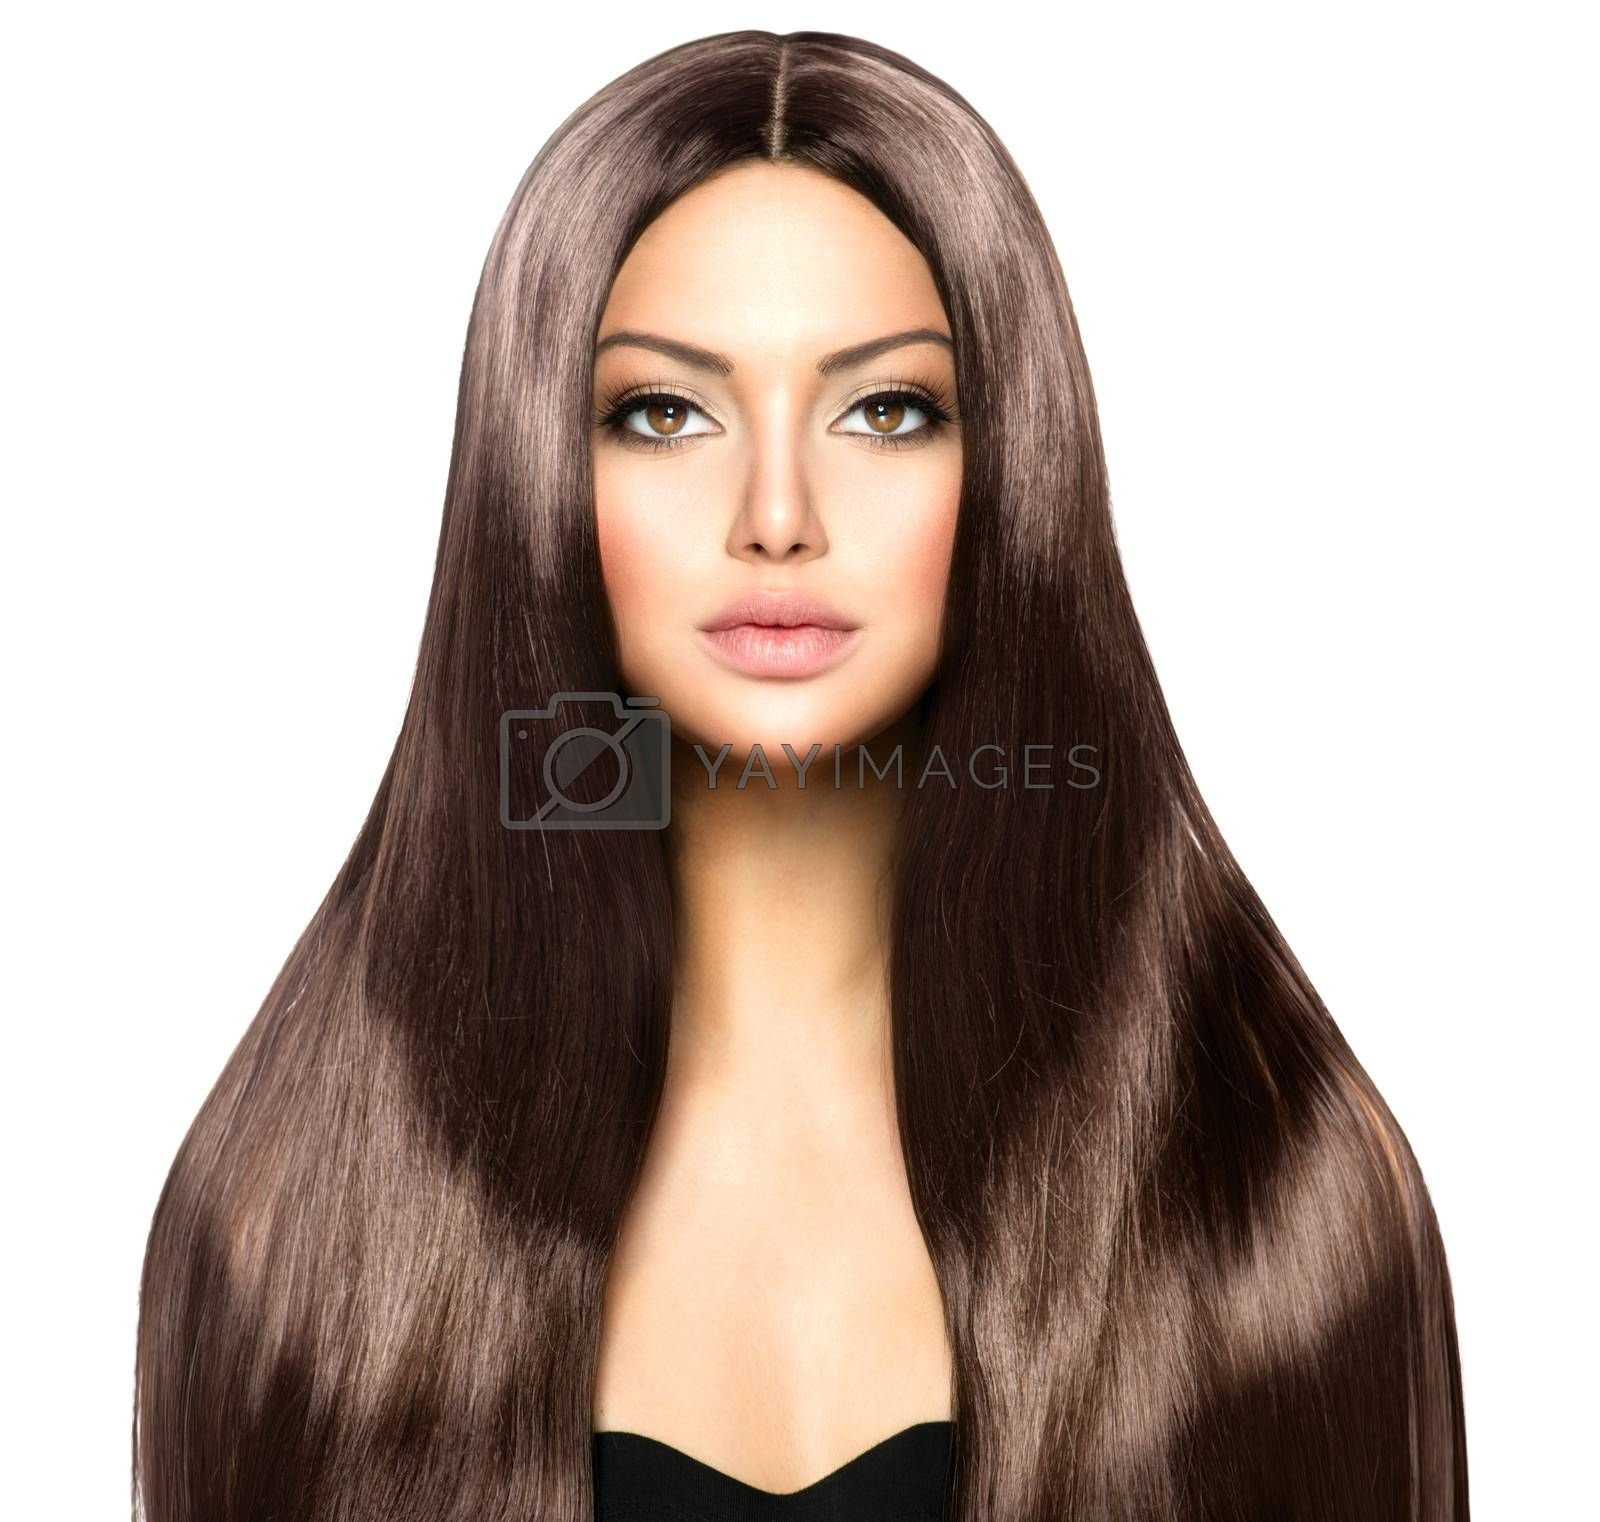 Beauty Woman with Long Healthy and Shiny Smooth Brown Hair by SubbotinaA